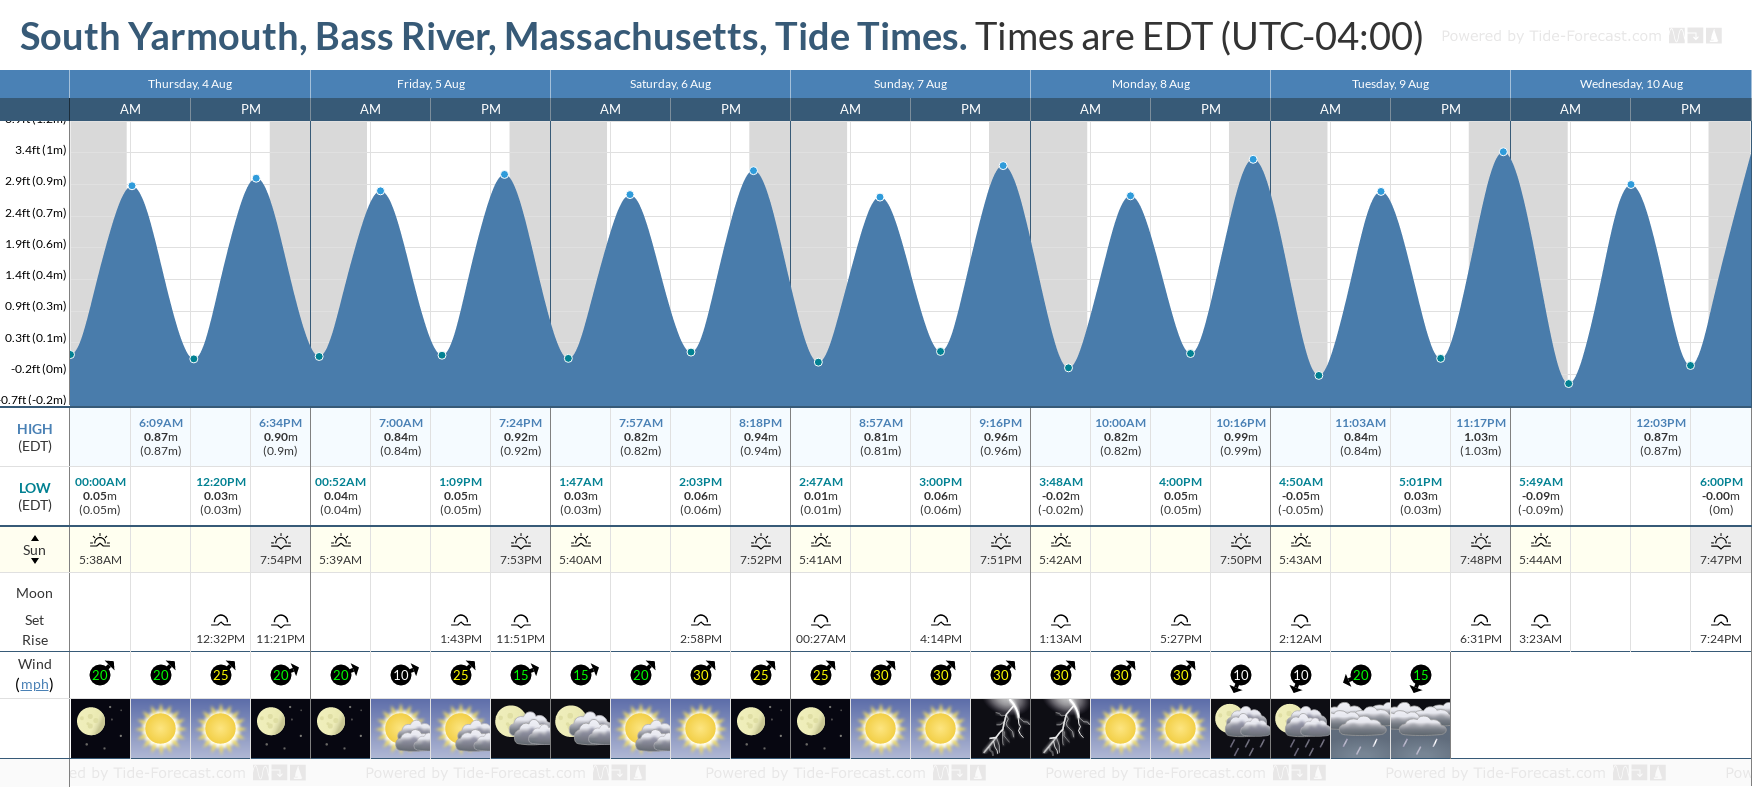 South Yarmouth, Bass River, Massachusetts Tide Chart including high and low tide tide times for the next 7 days